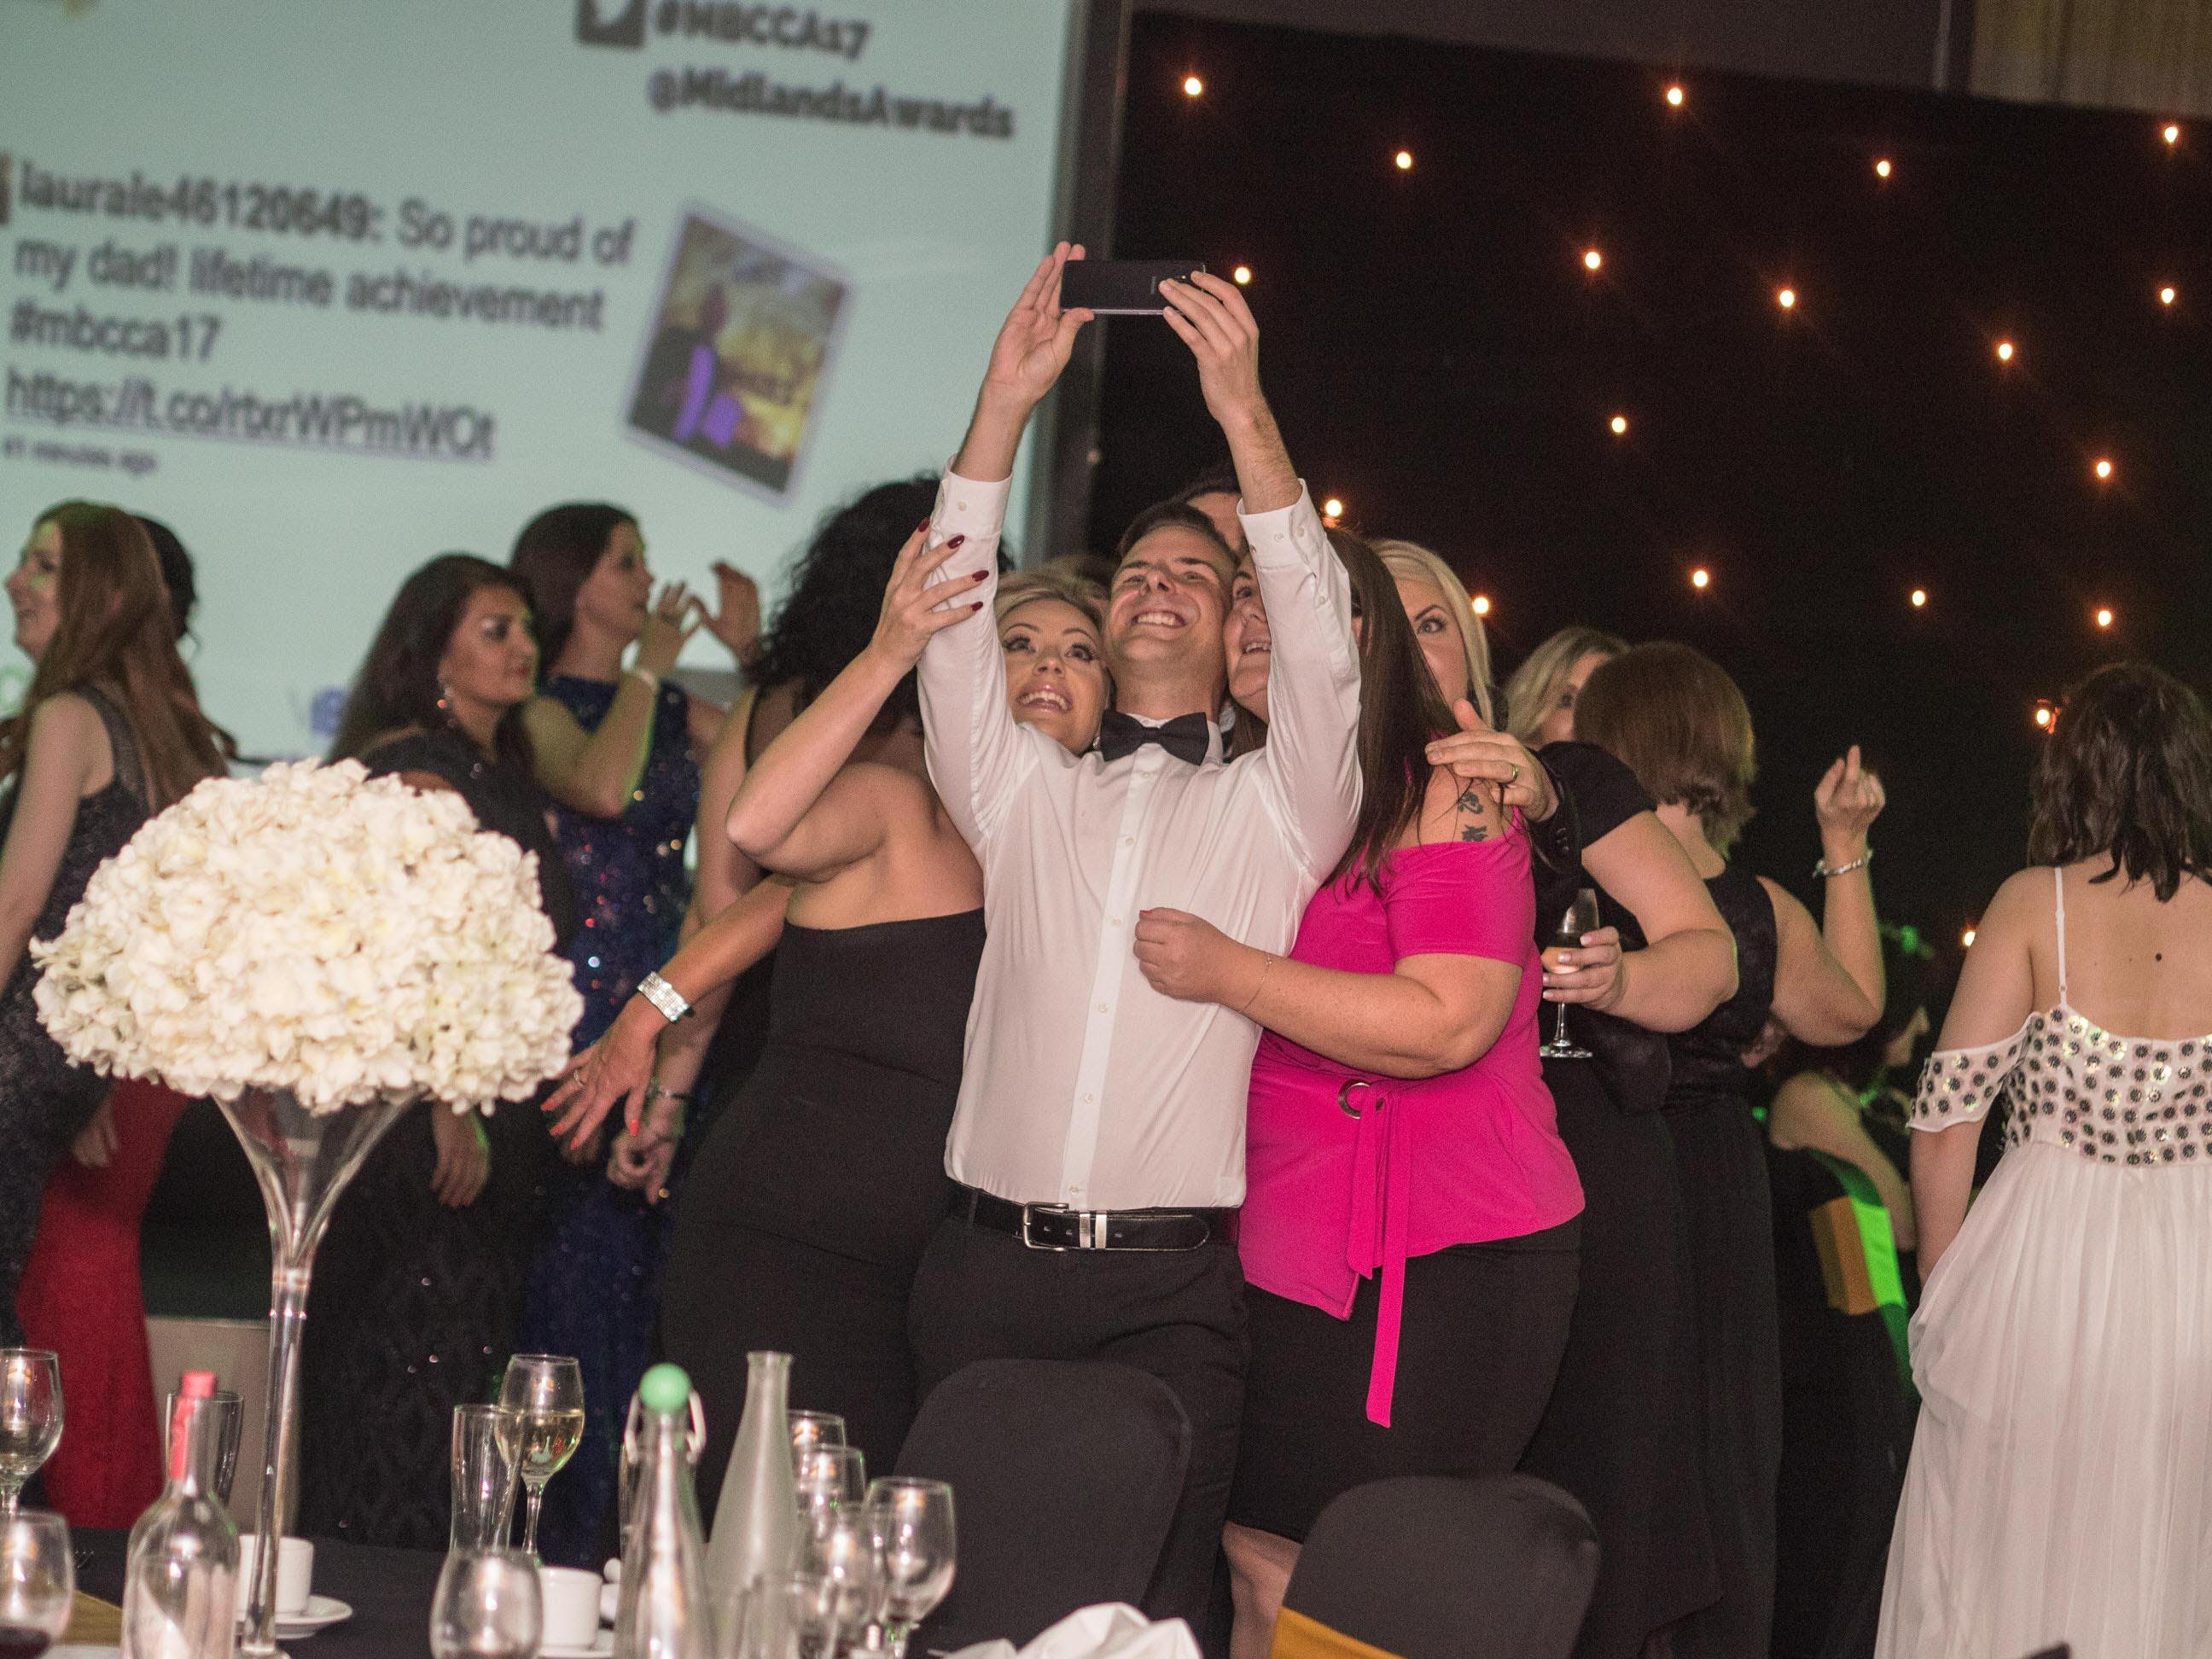 The Midlands Business & Community Charity Awa